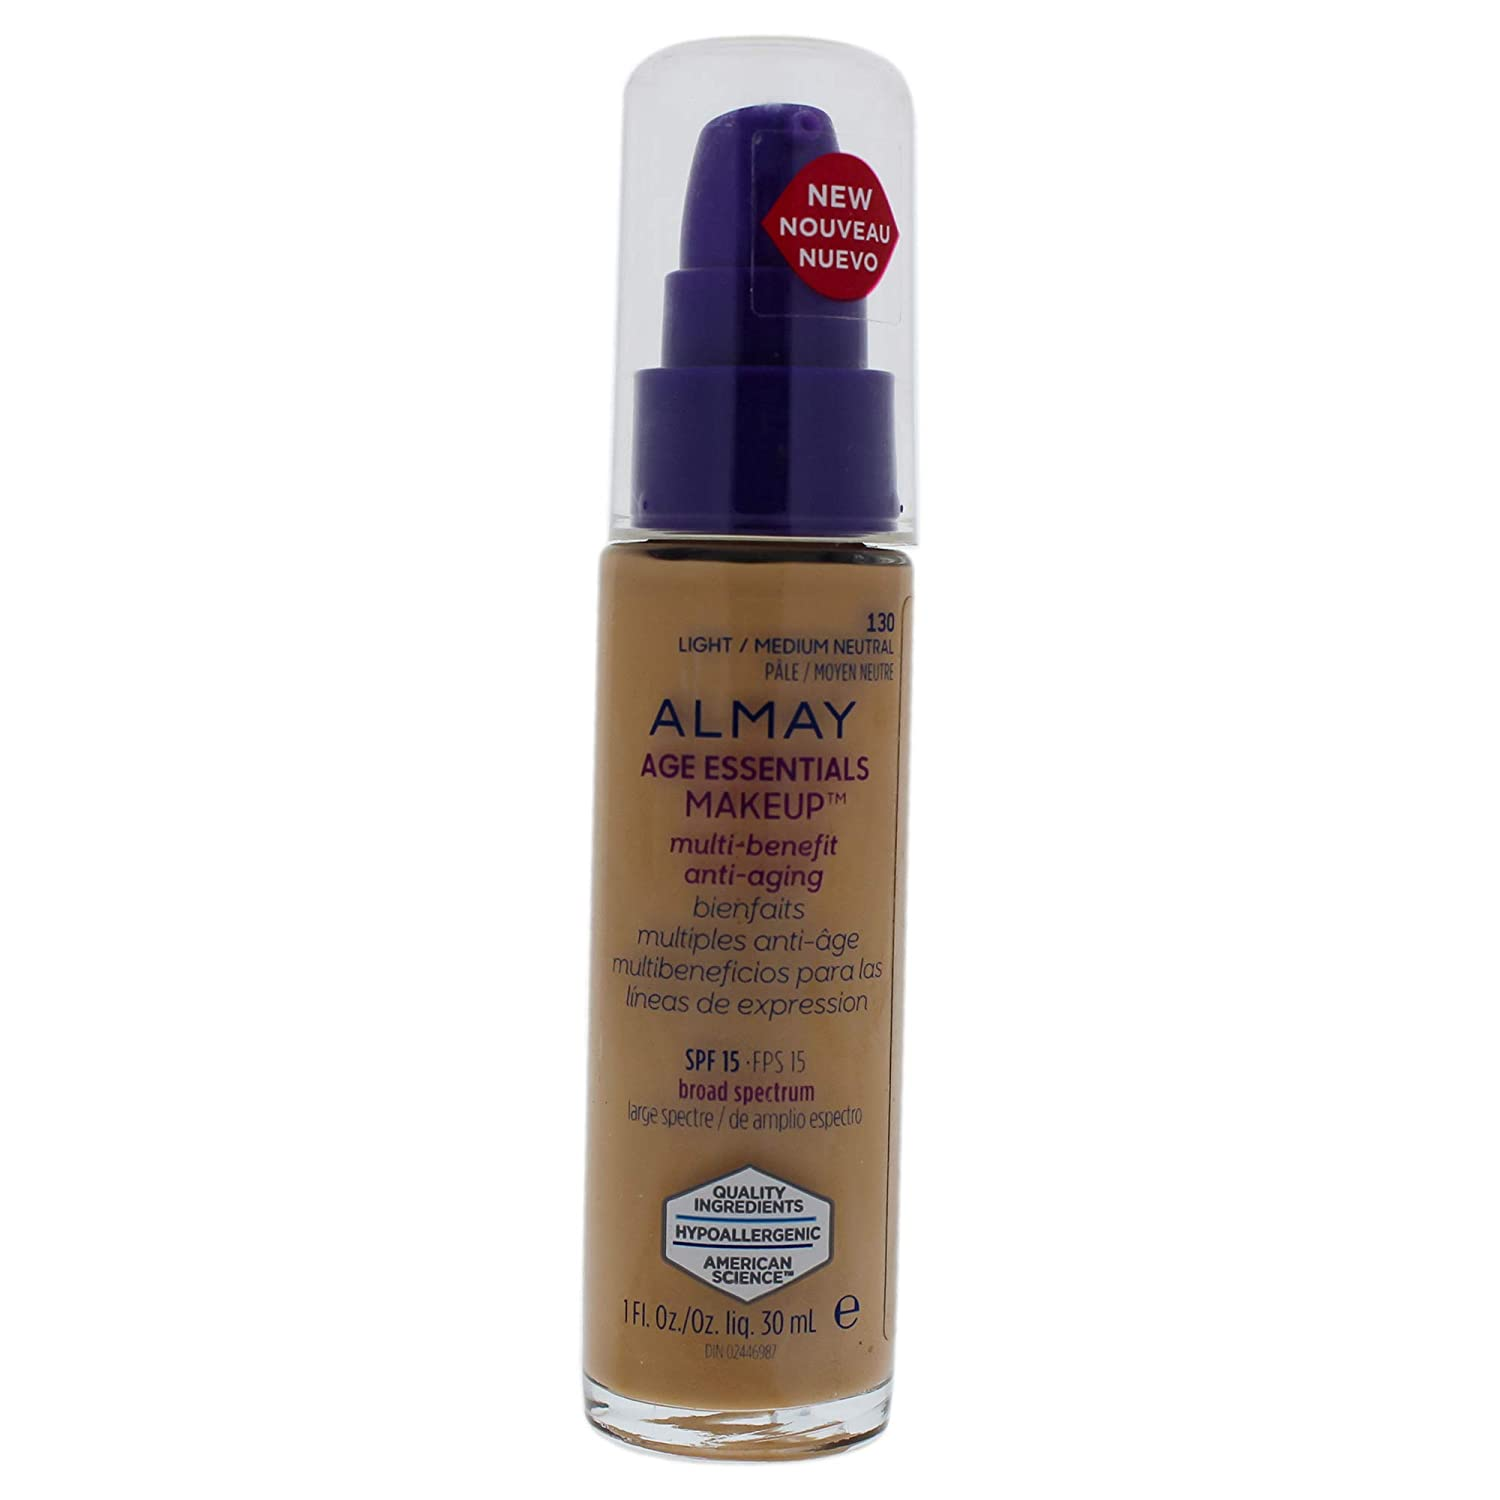 e755fda9c5f Amazon.com : Almay Age Essentials Multi-benefit Anti-aging Makeup - 130  Light-medium Neutral By Almay for Women - 1 Oz Foundation, 1 Oz : Beauty